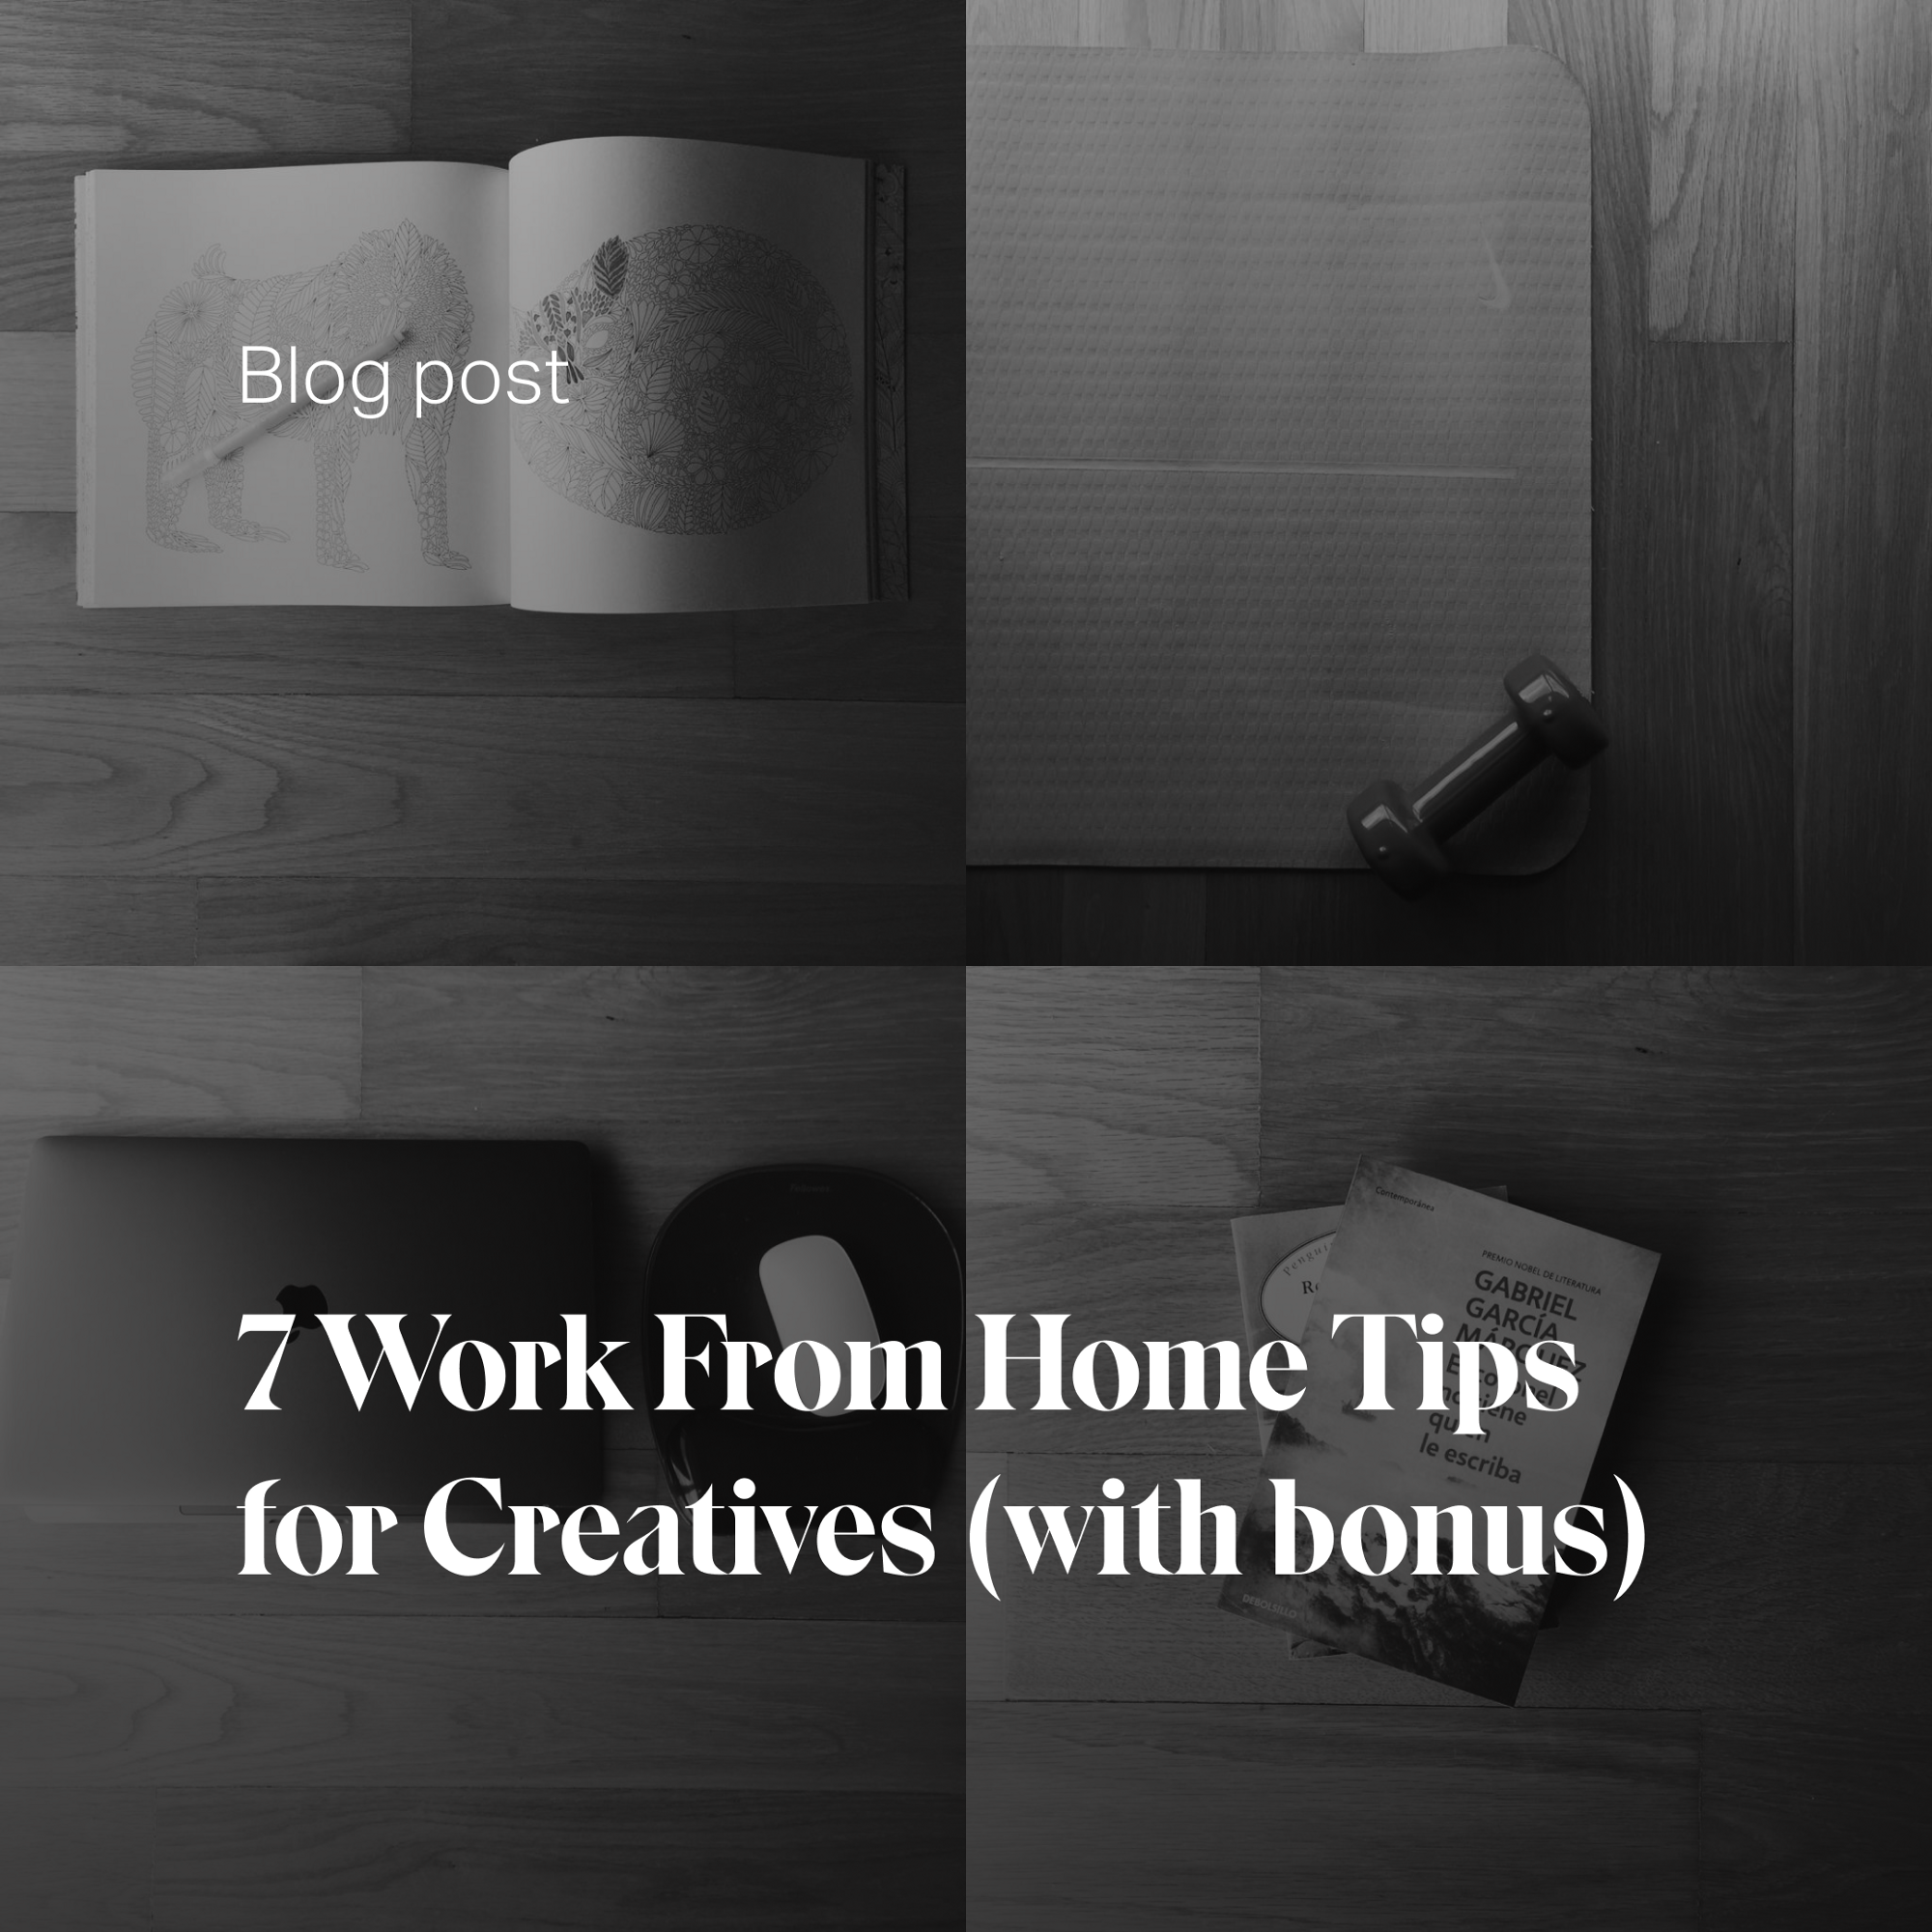 7 Work From Home Tips for Creatives (with bonus)